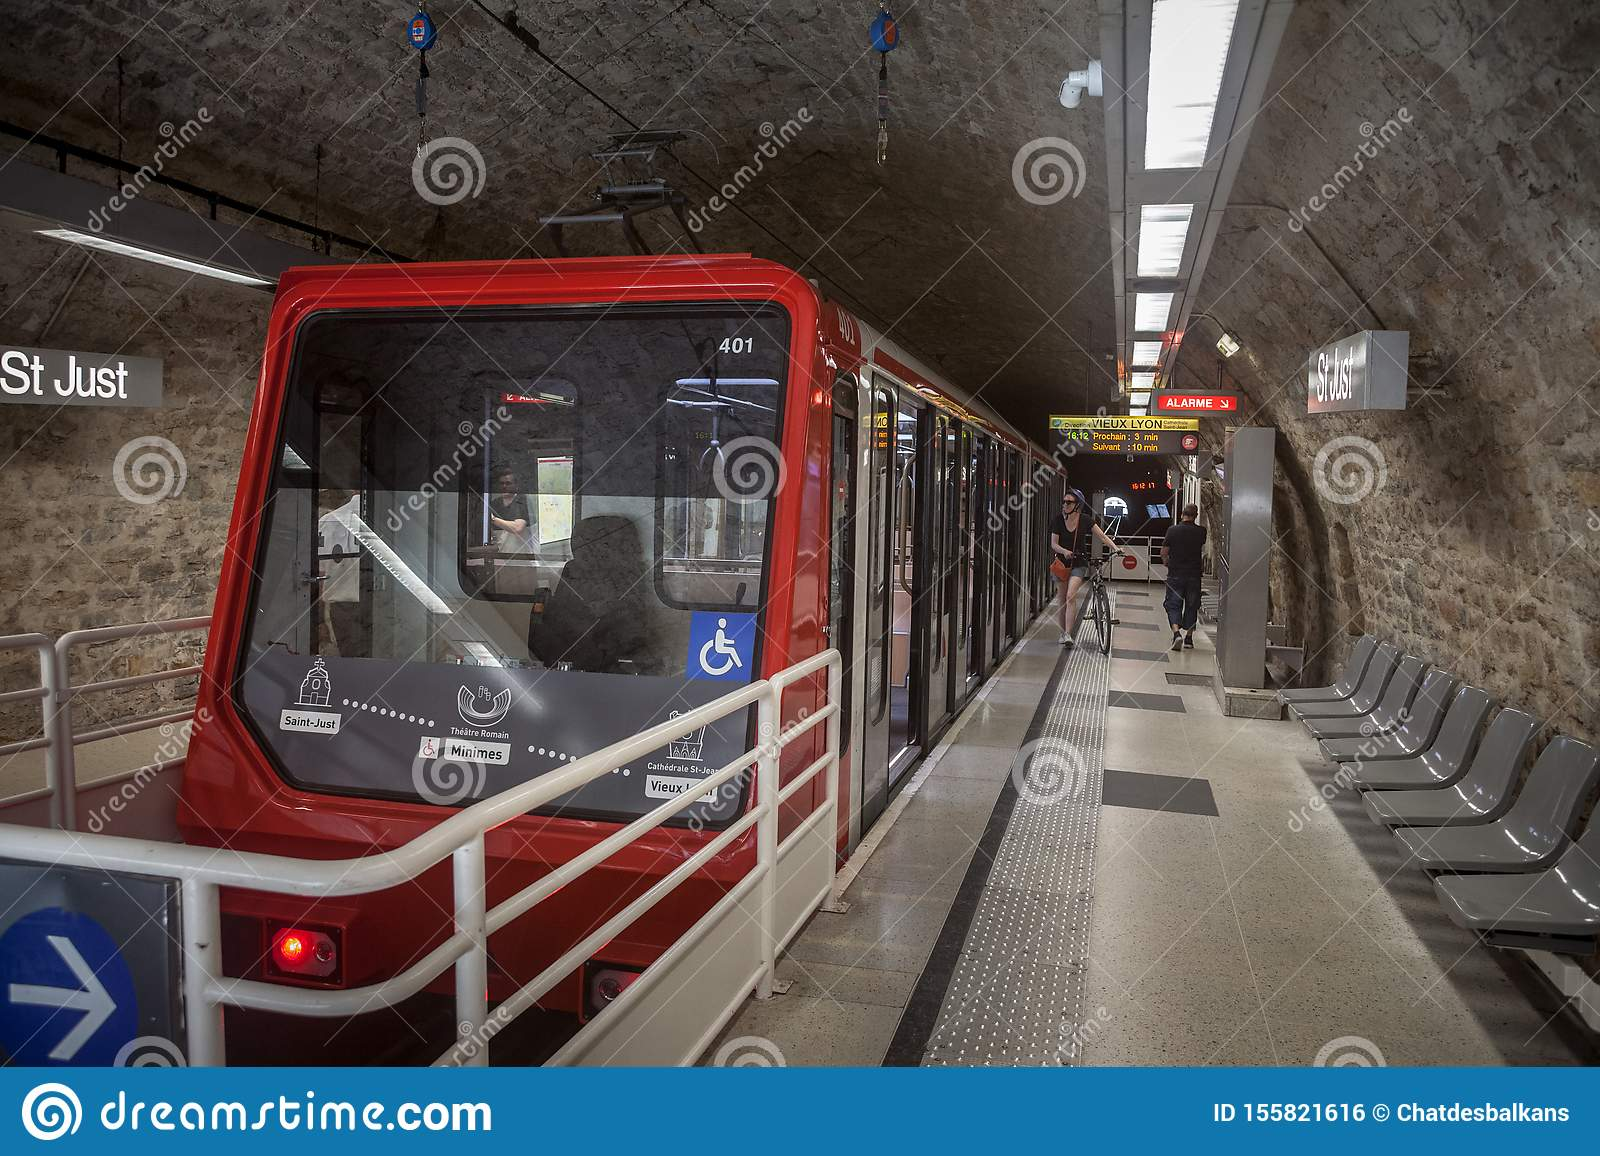 Lyon Funicular Railway Train Entering The Station Of St Just